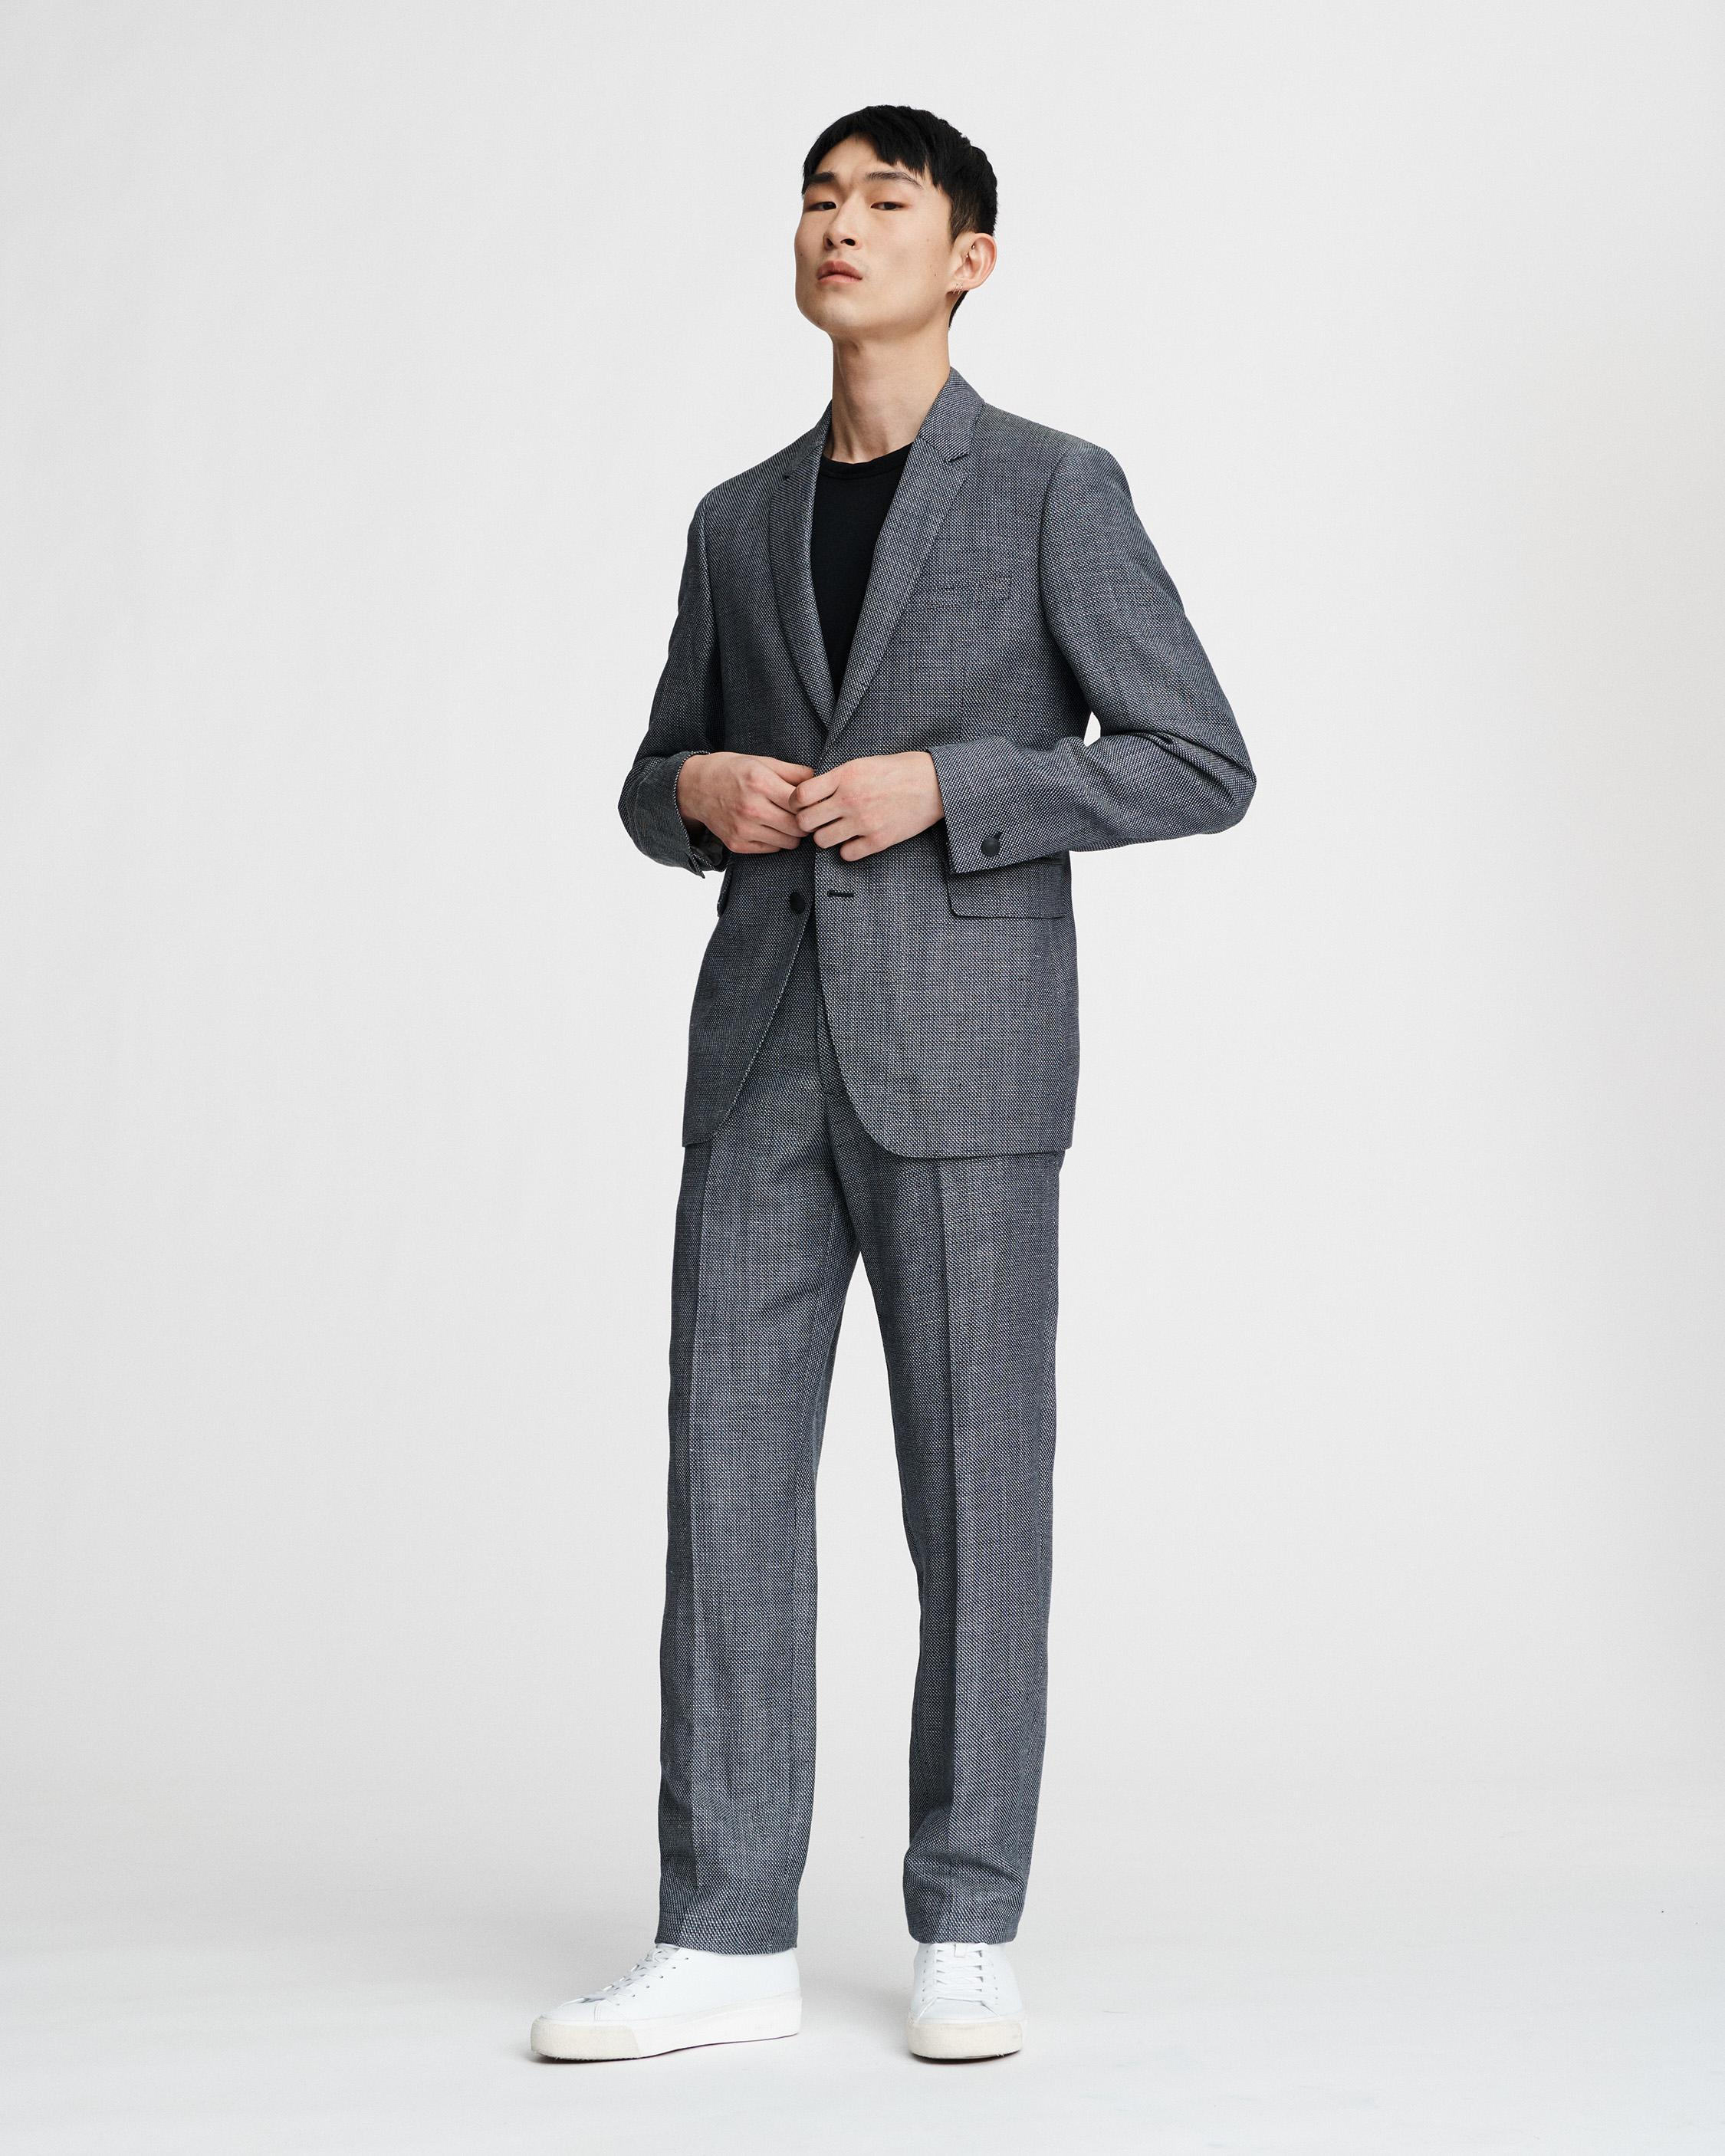 Razor Suit in Navy/White